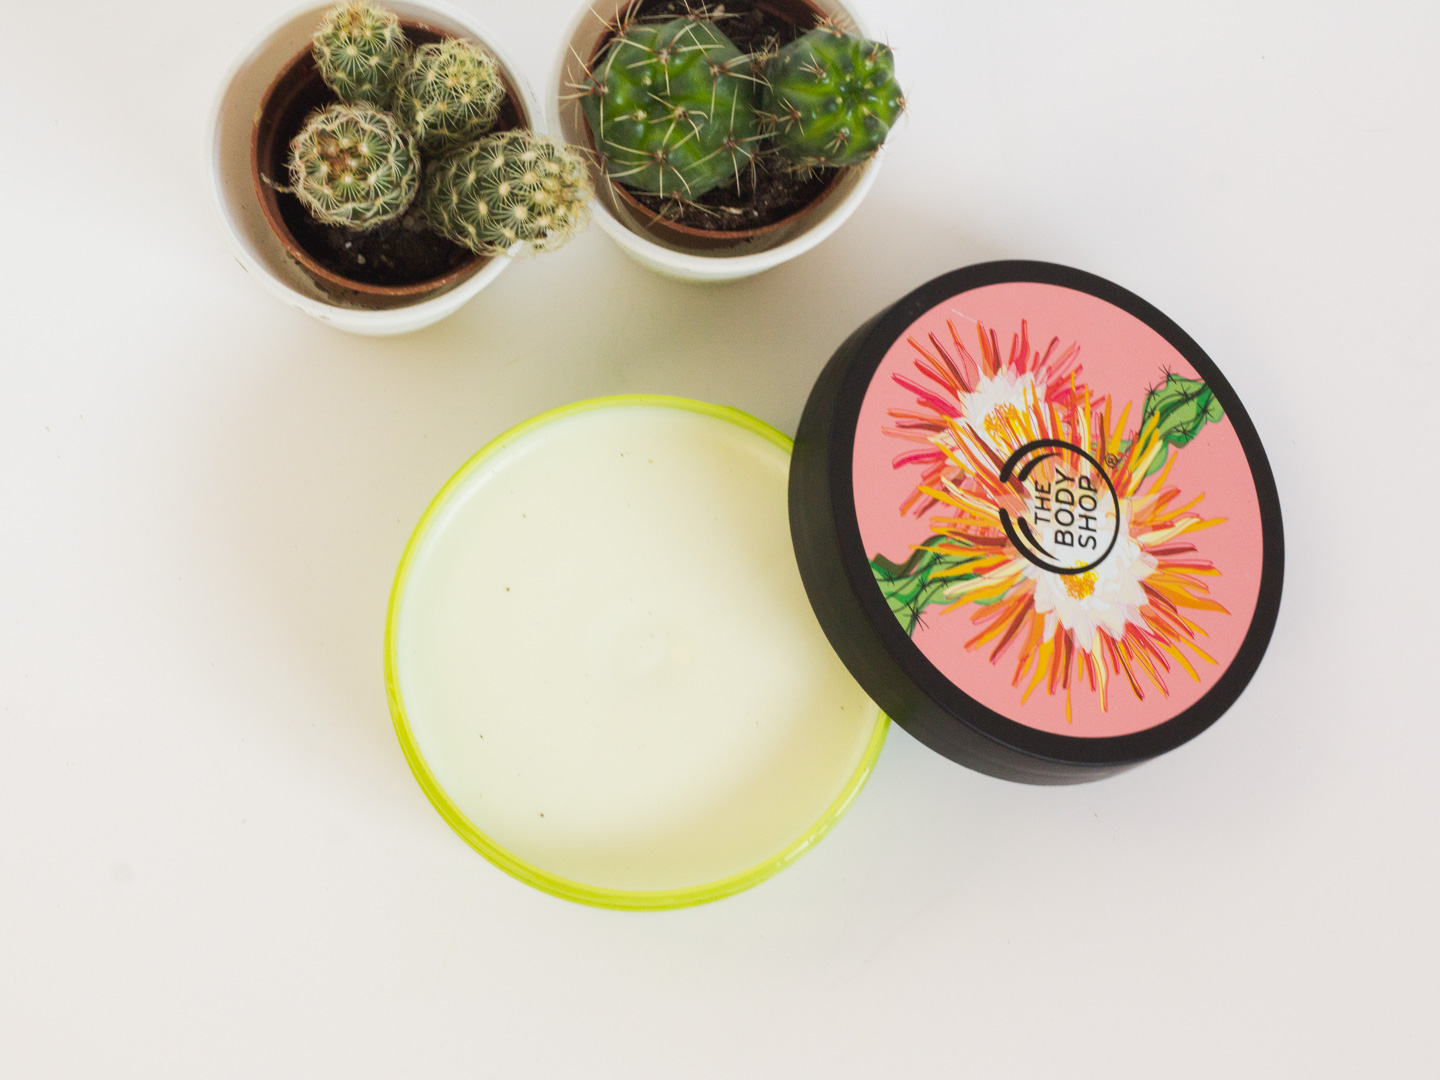 The Body Shop Cactus Blossom Body Butter